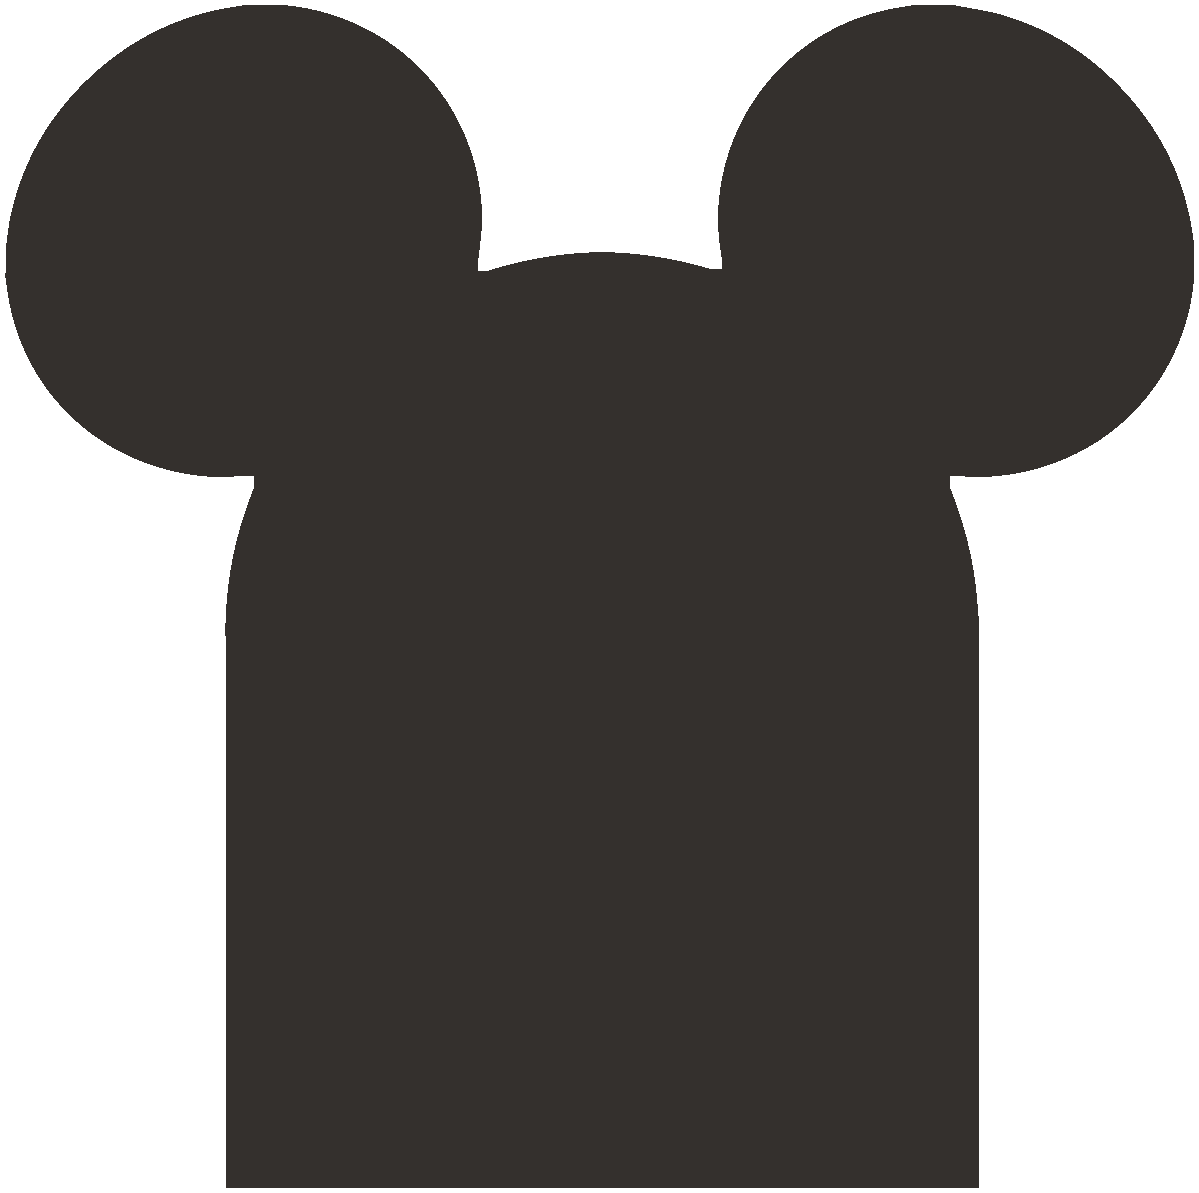 Tombstone with mouse ears.